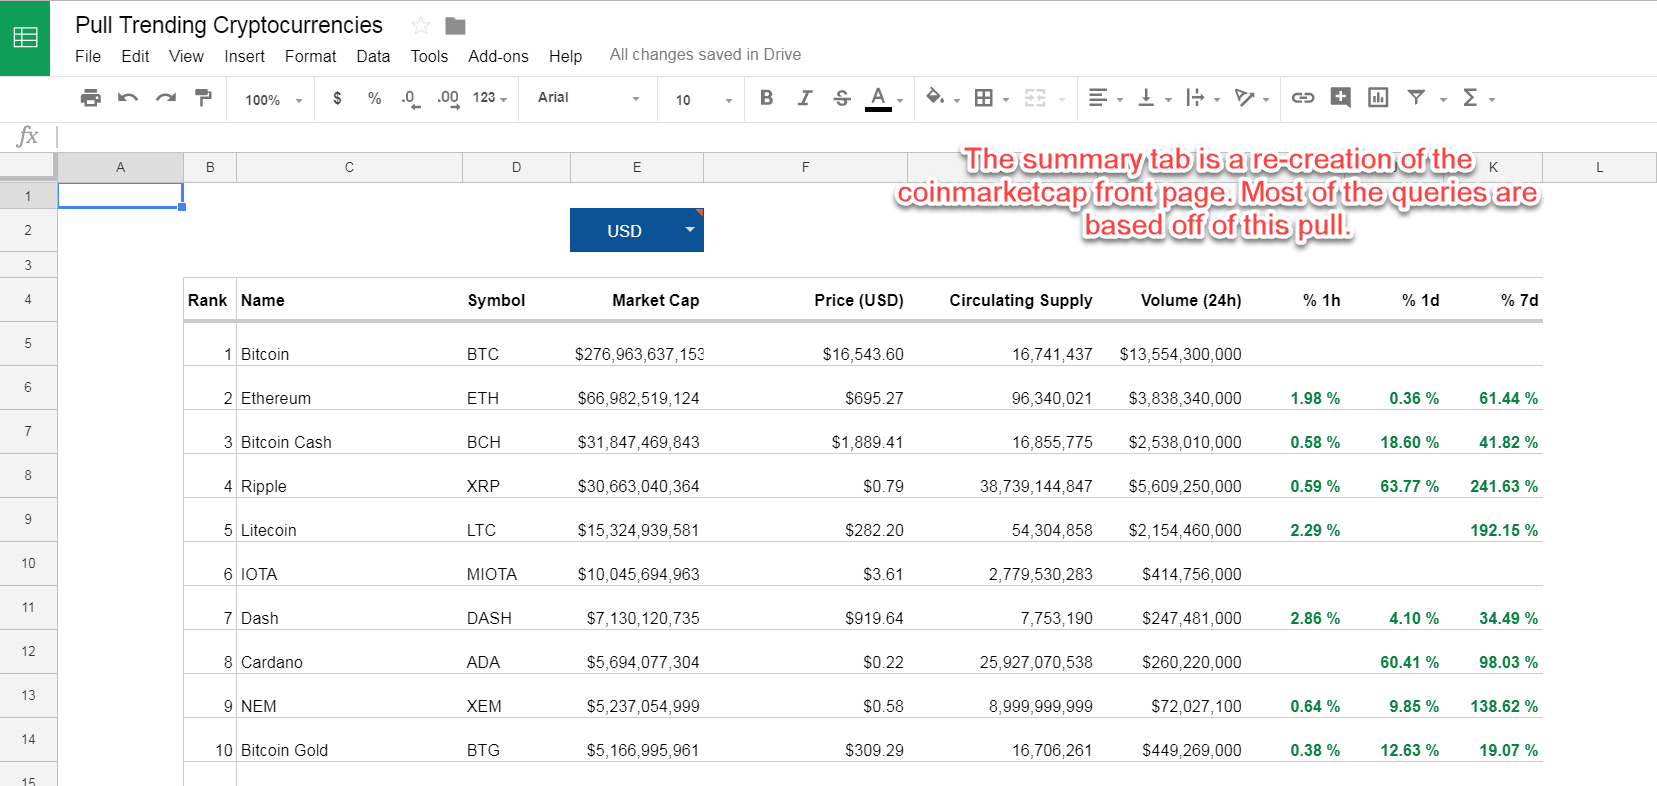 Crypto Spreadsheet For Financial Modeling For Cryptocurrencies: The Spreadsheet That Got Me